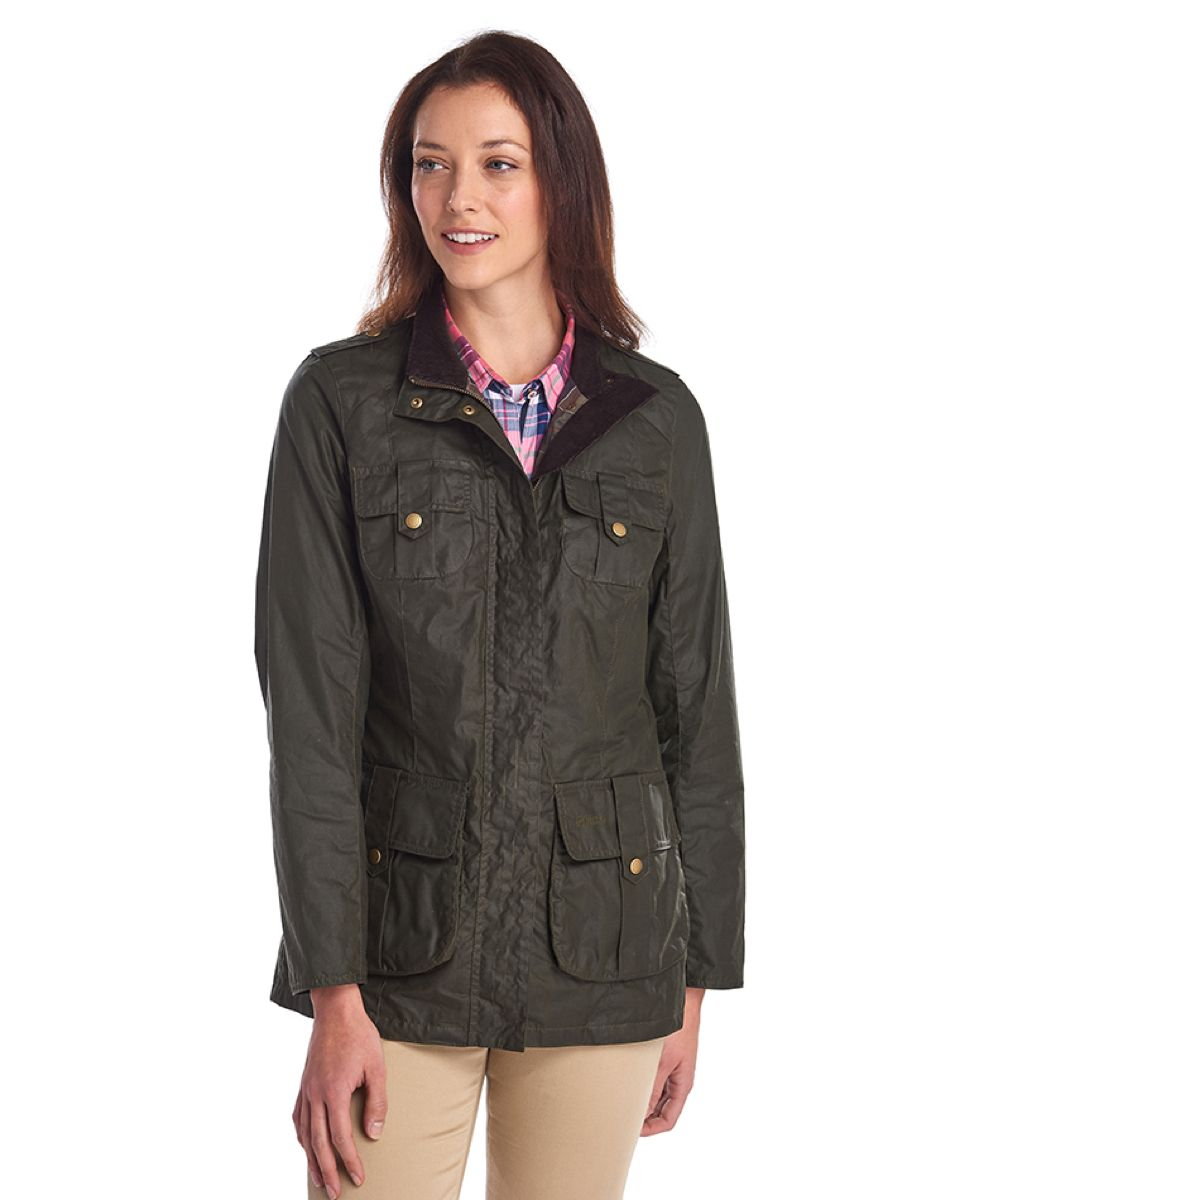 Barbour Defence Lightweight Wax Jacket – Olive/ Classic